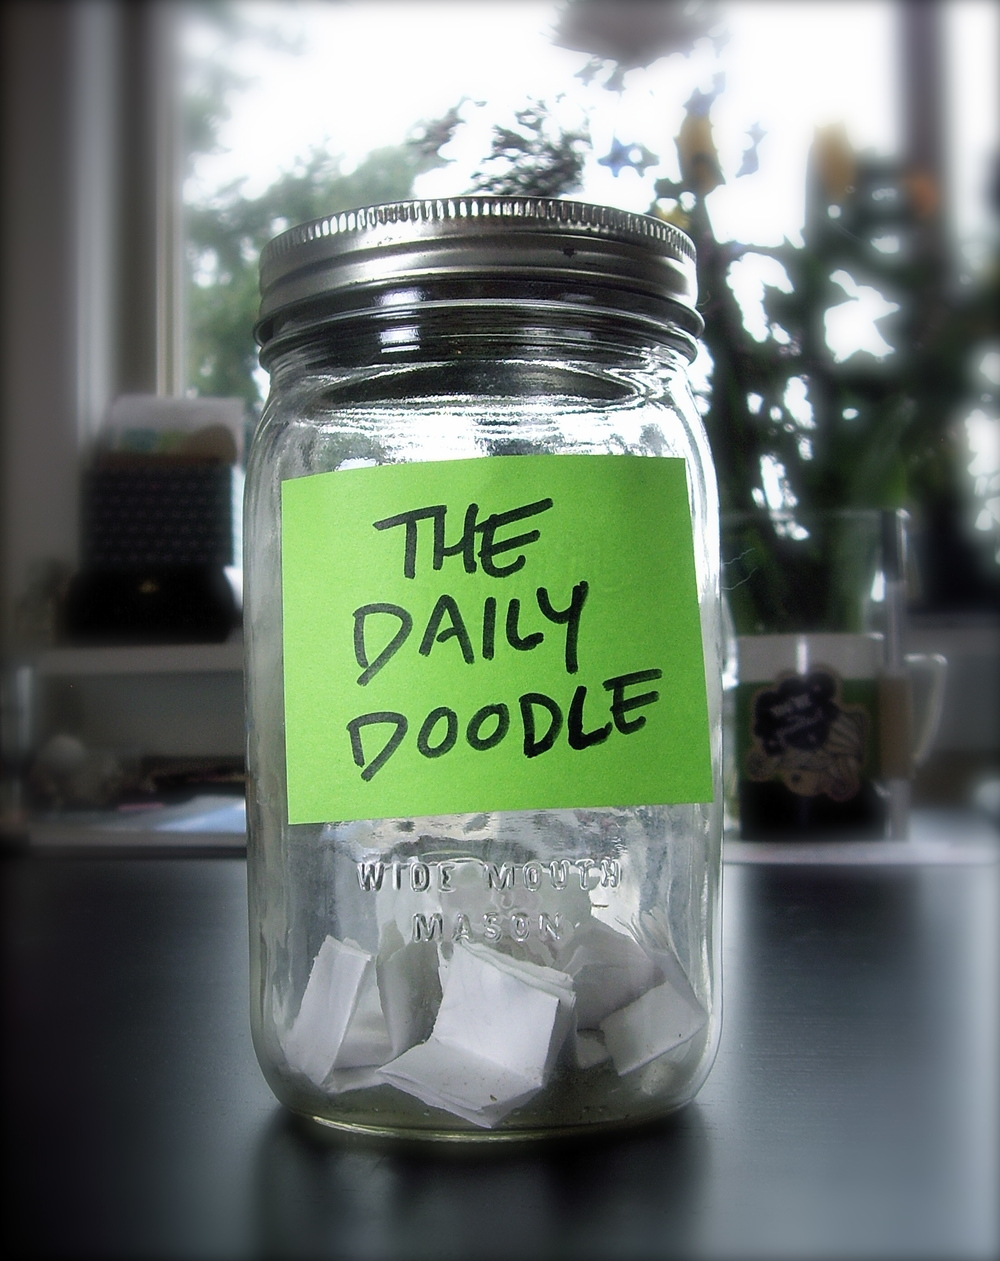 The Daily Doodle Lottery Jar